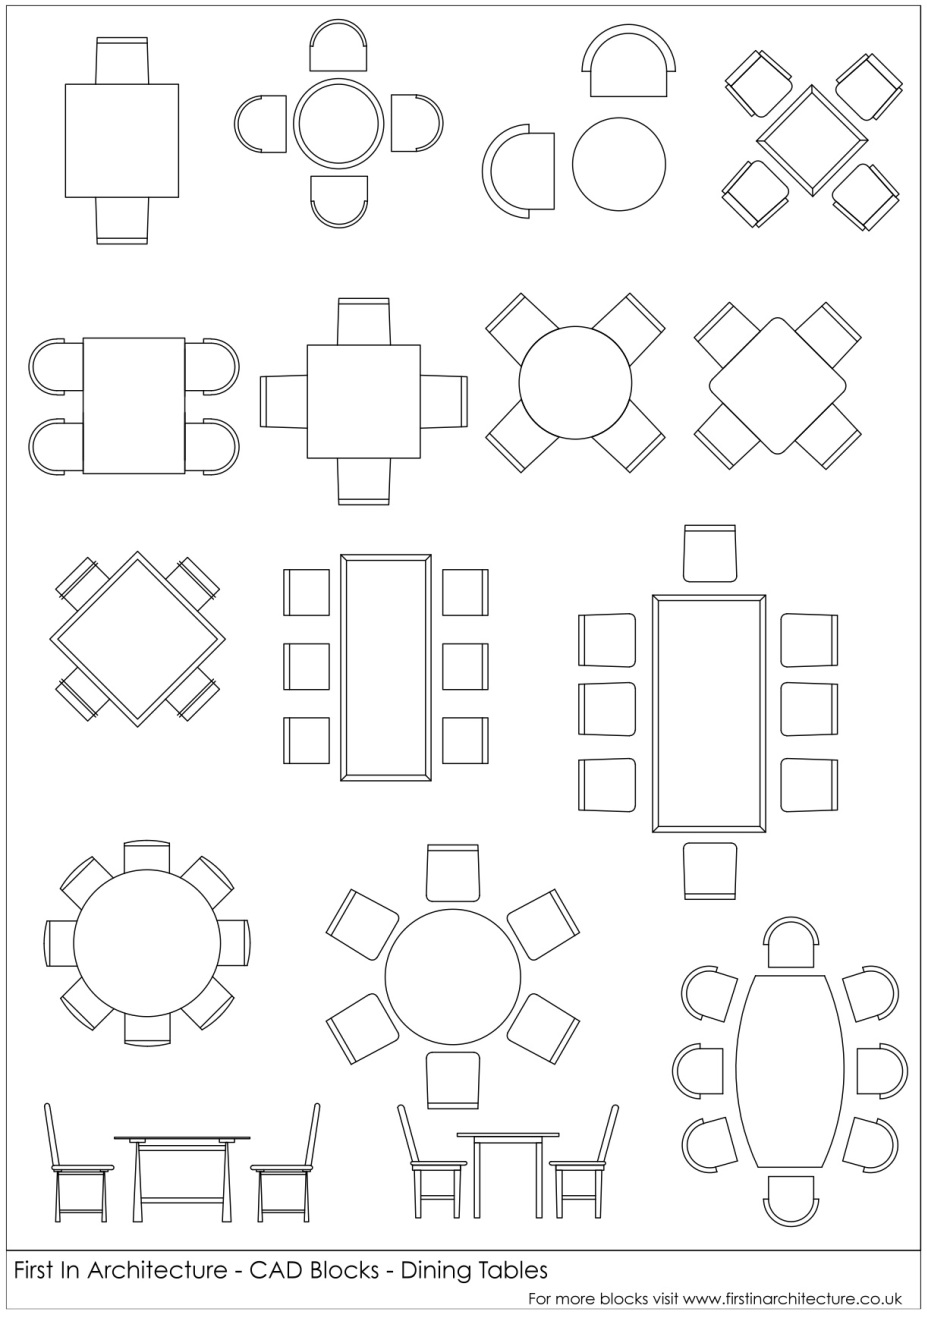 Sliding Door Plan Drawing At Getdrawings Free For Personal Use